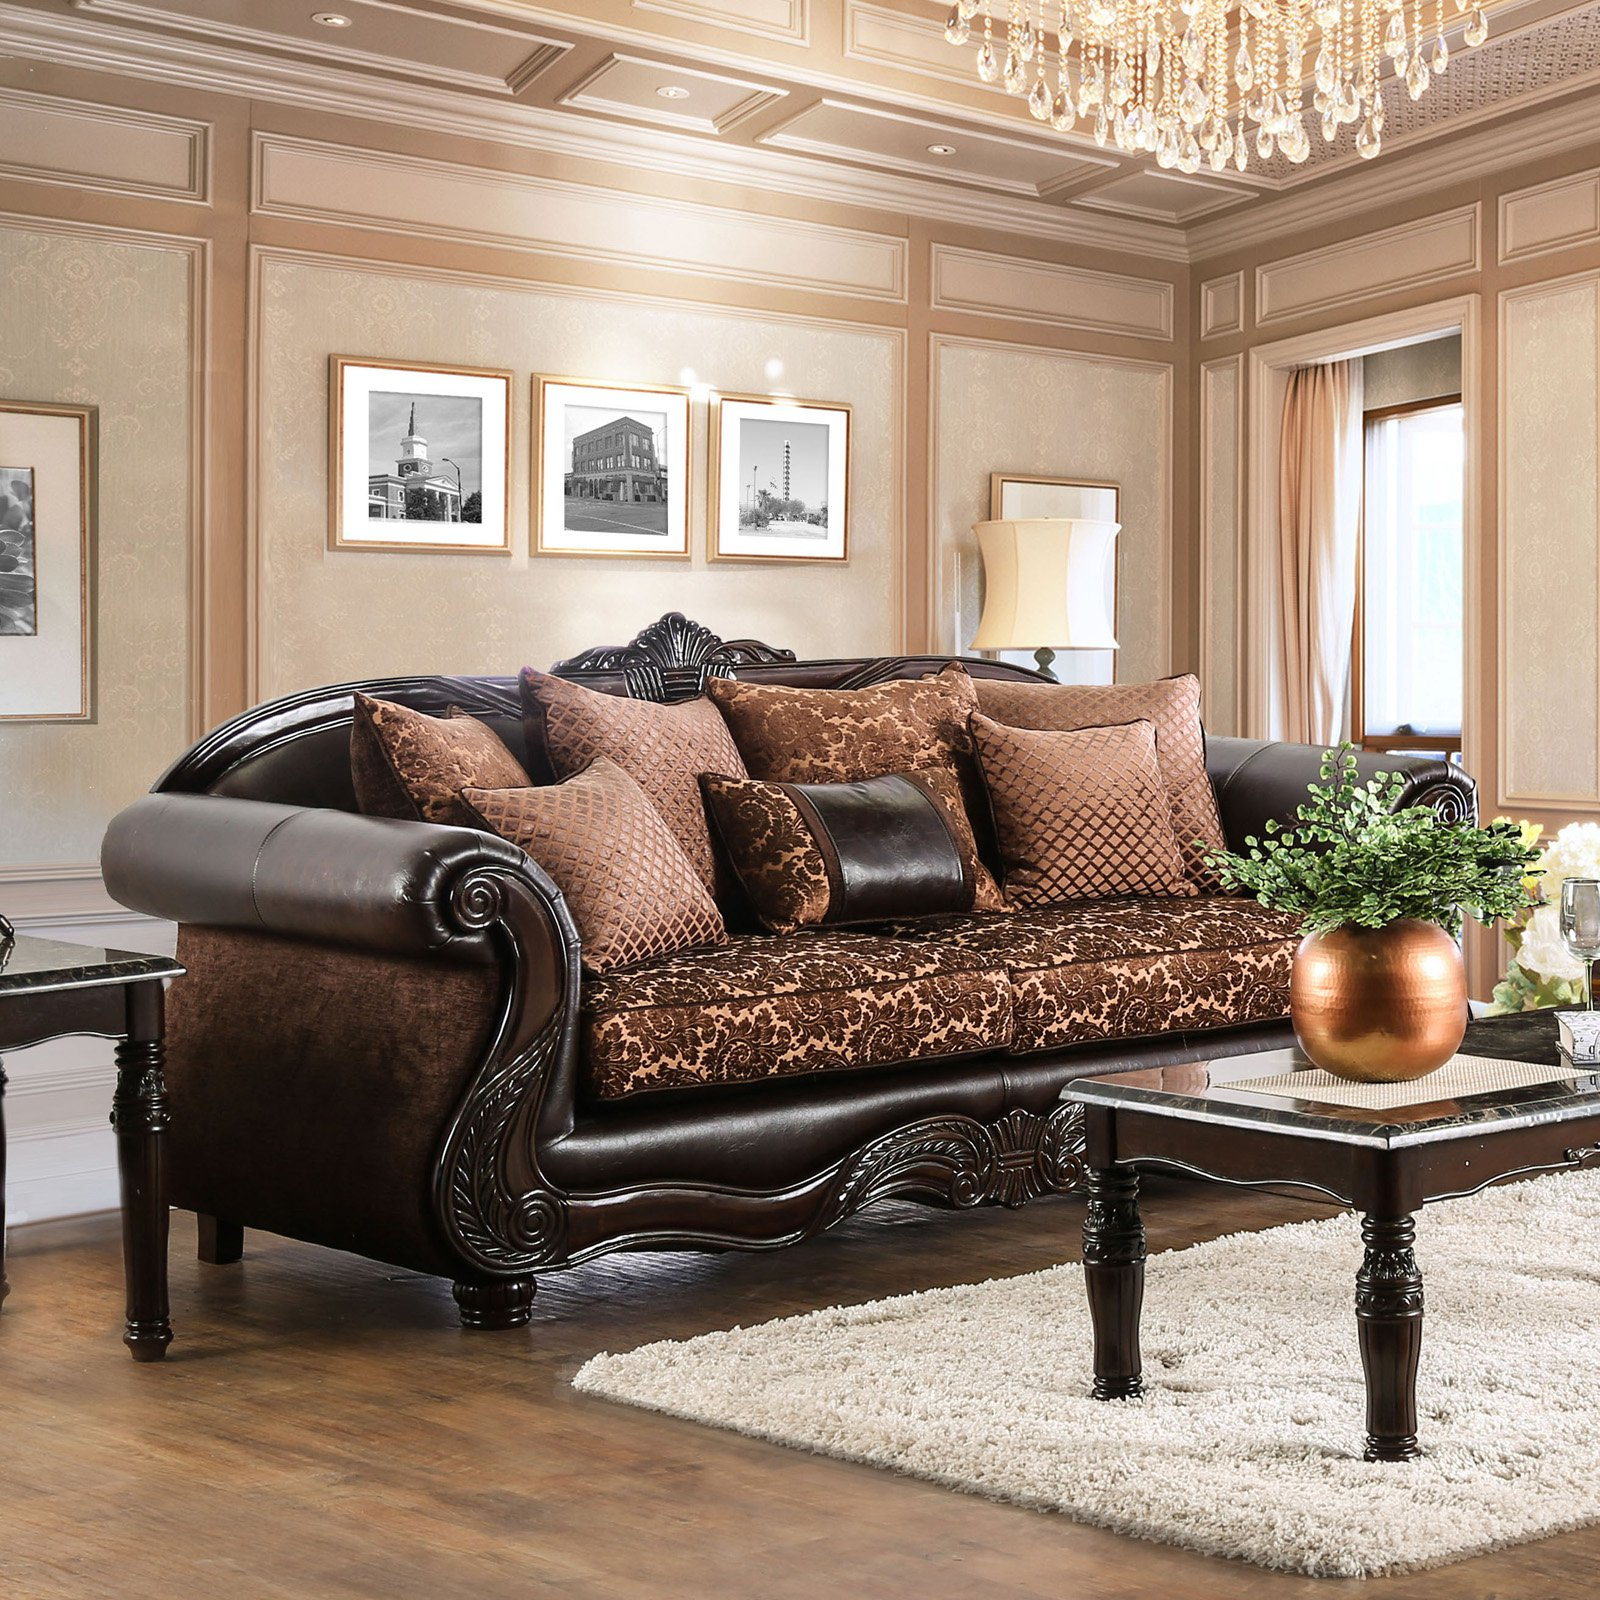 Furniture Of America Maldino Traditional Style Intricate Wood Carved Sofa